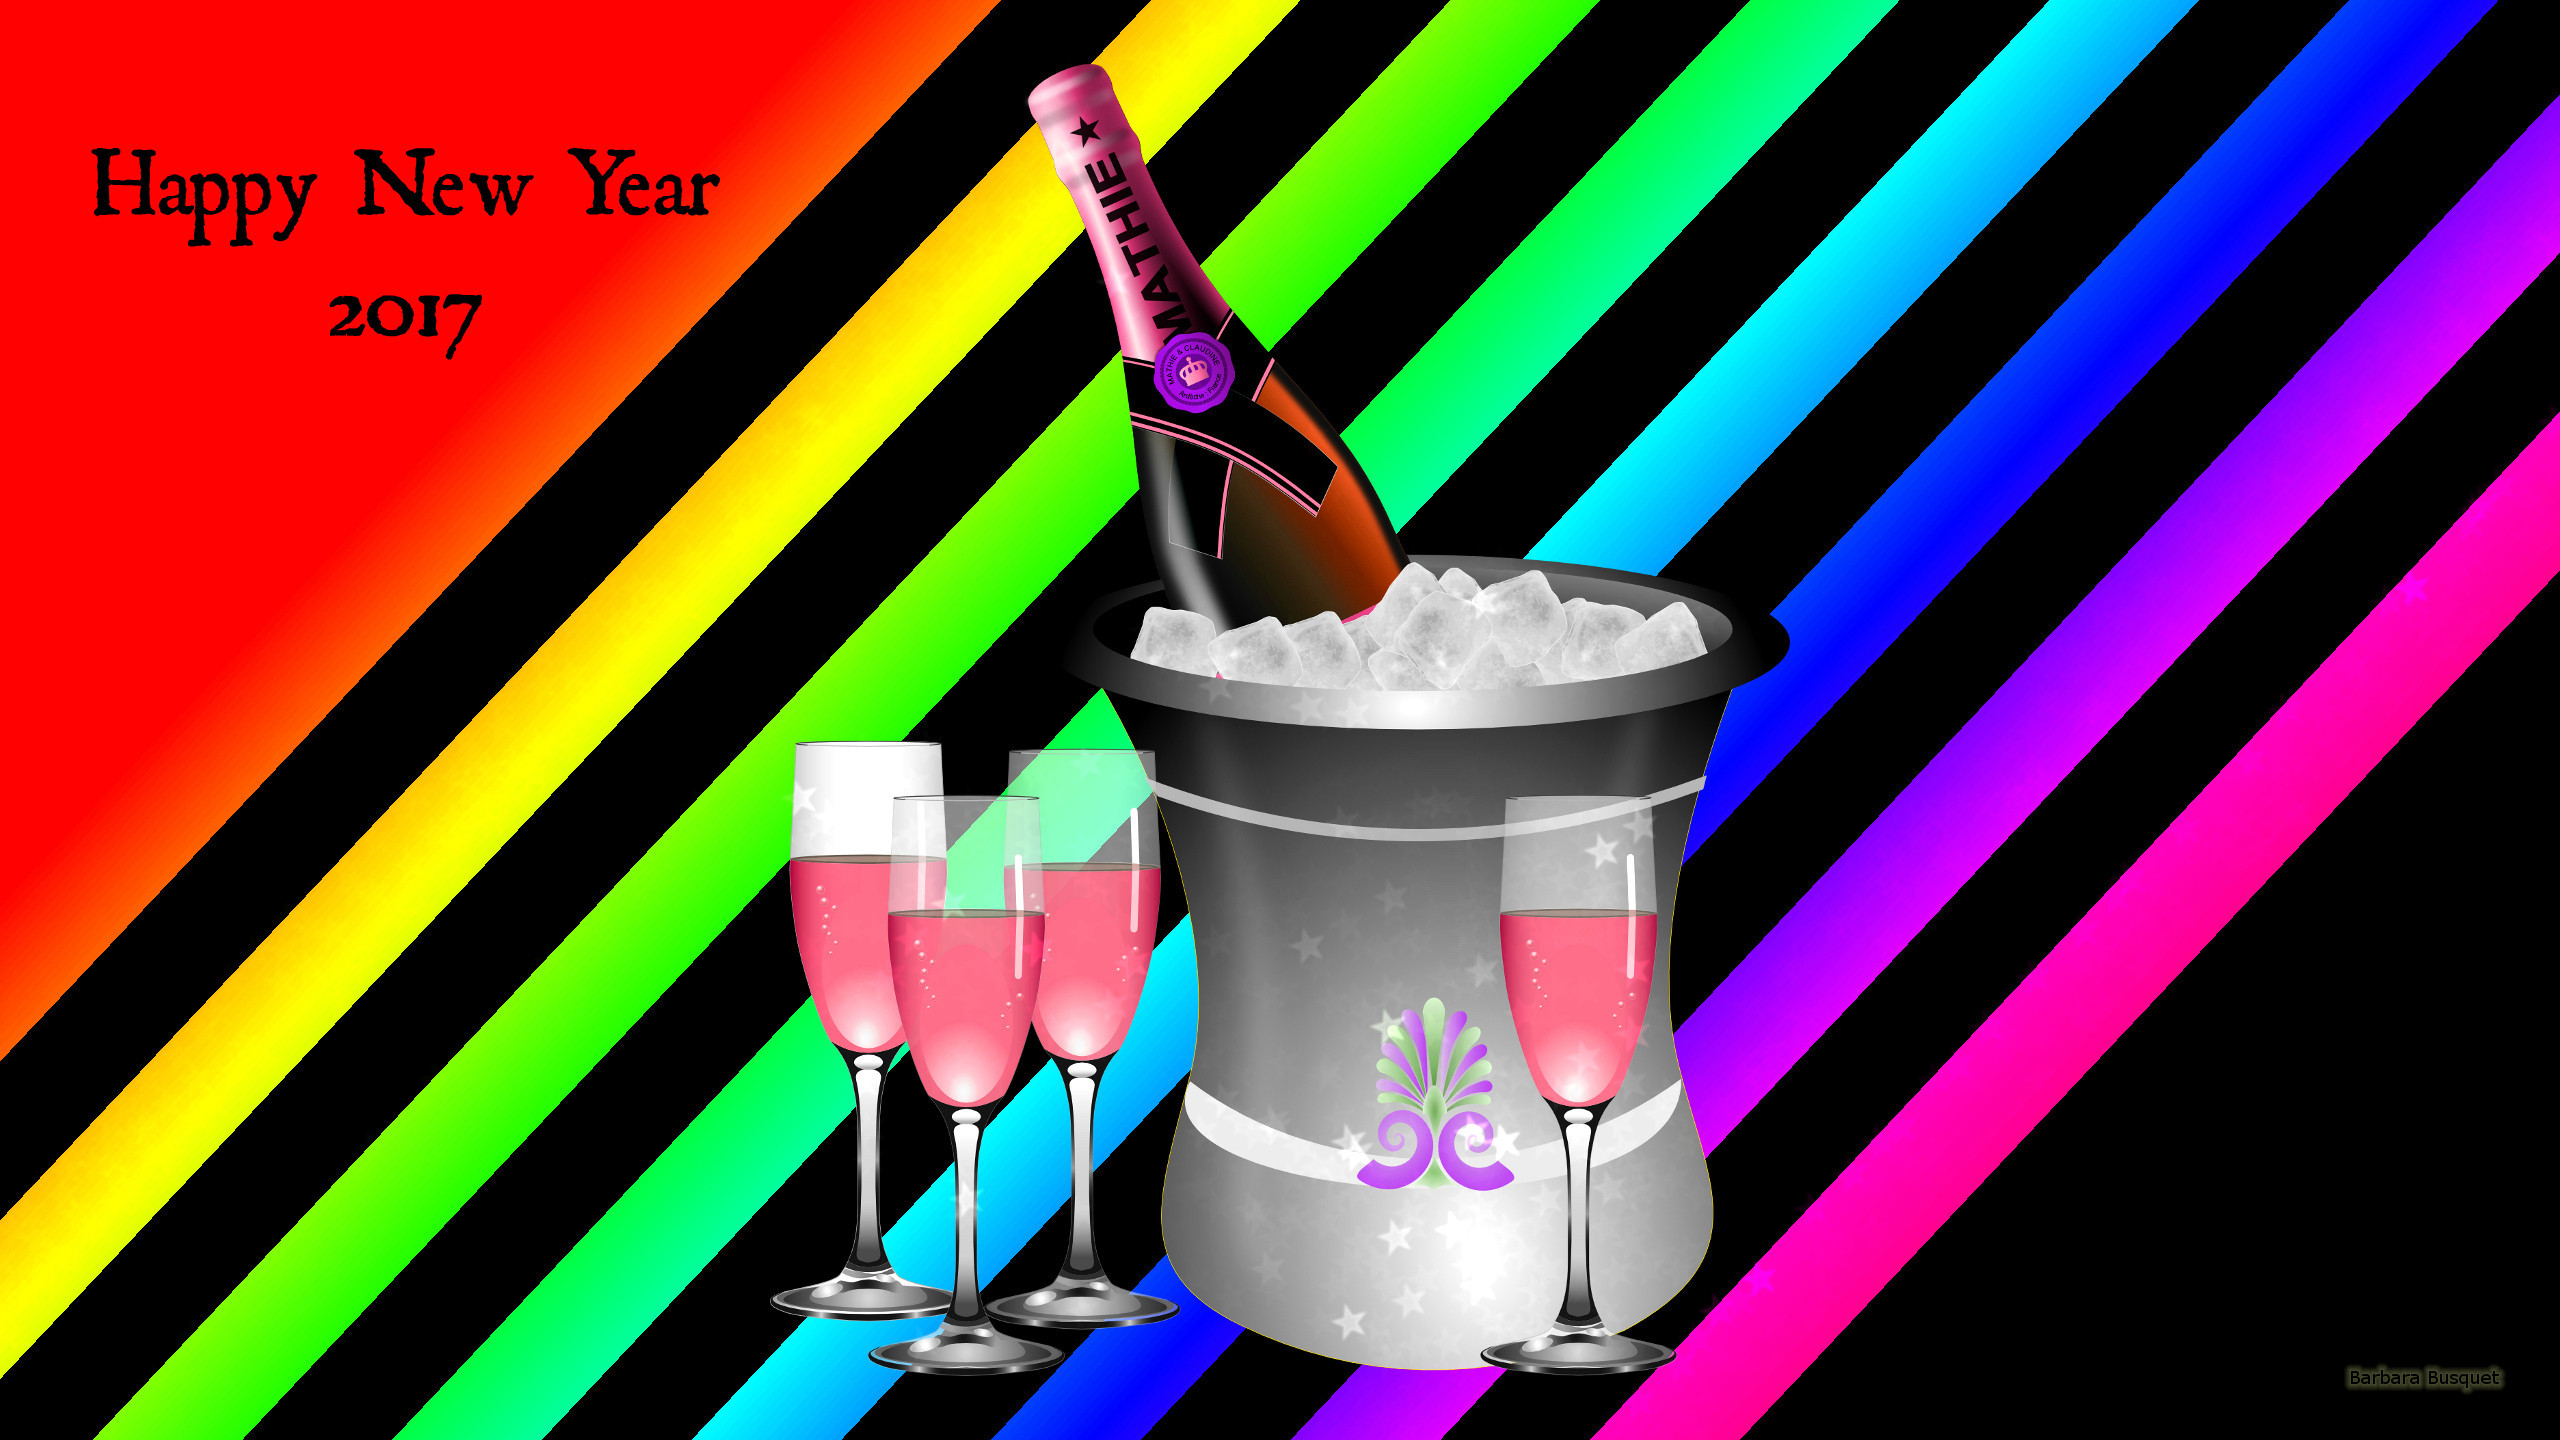 Orange Happy New Year 2017 wallpaper with champagne glasses. A bucket with  ice and champagne.